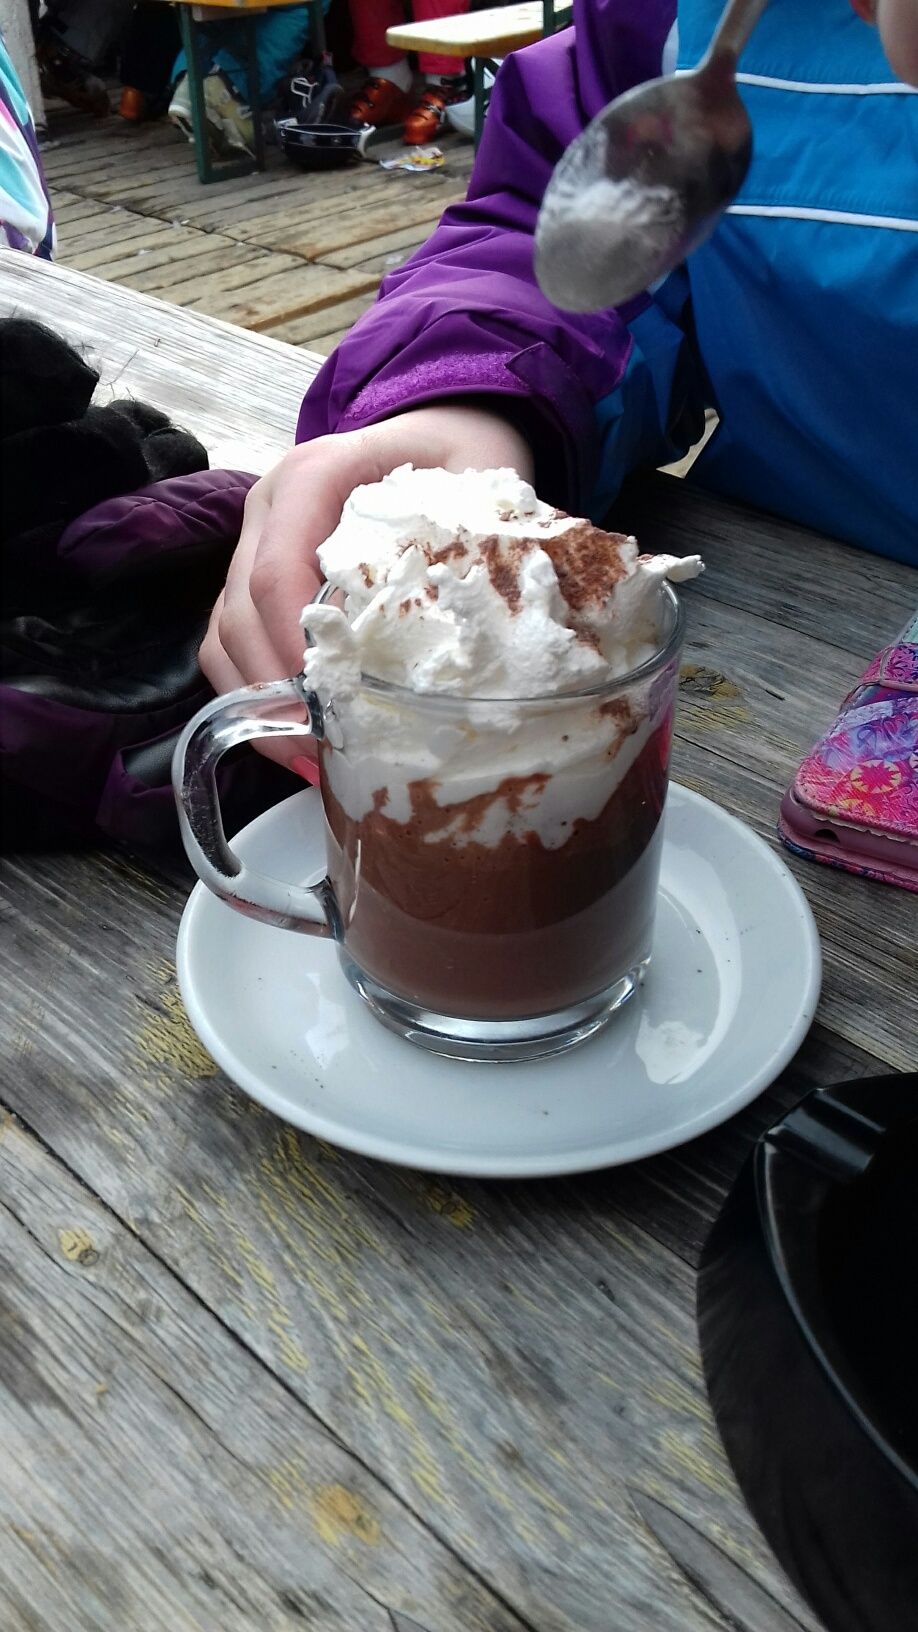 My hot chocolate